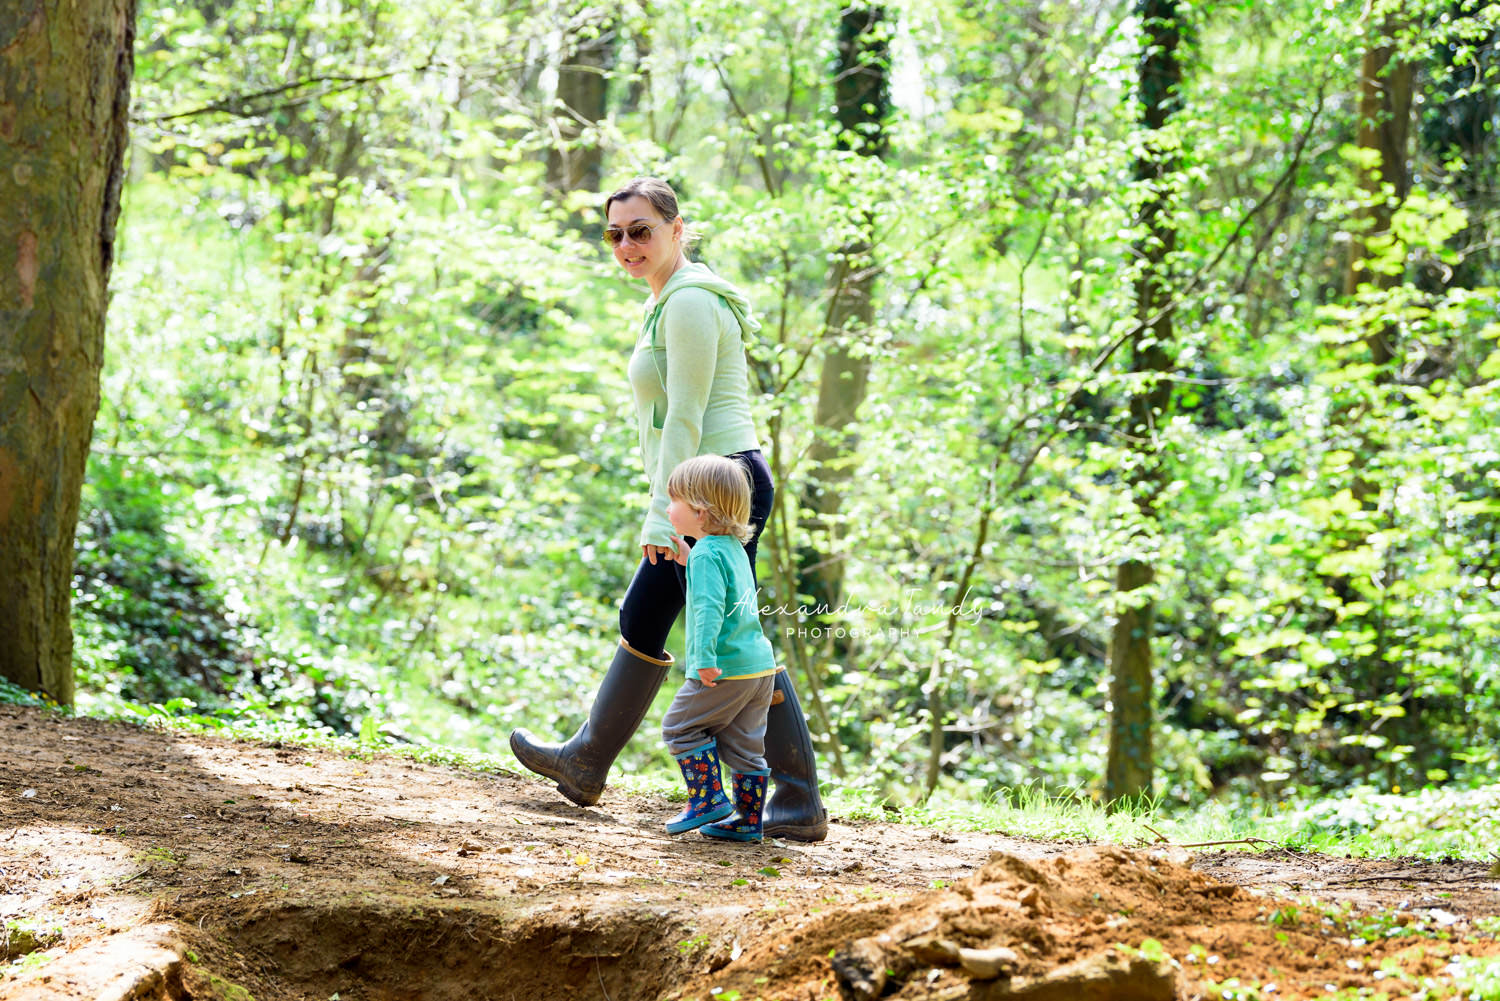 Family Photographer capturing mother and son waling in woodland